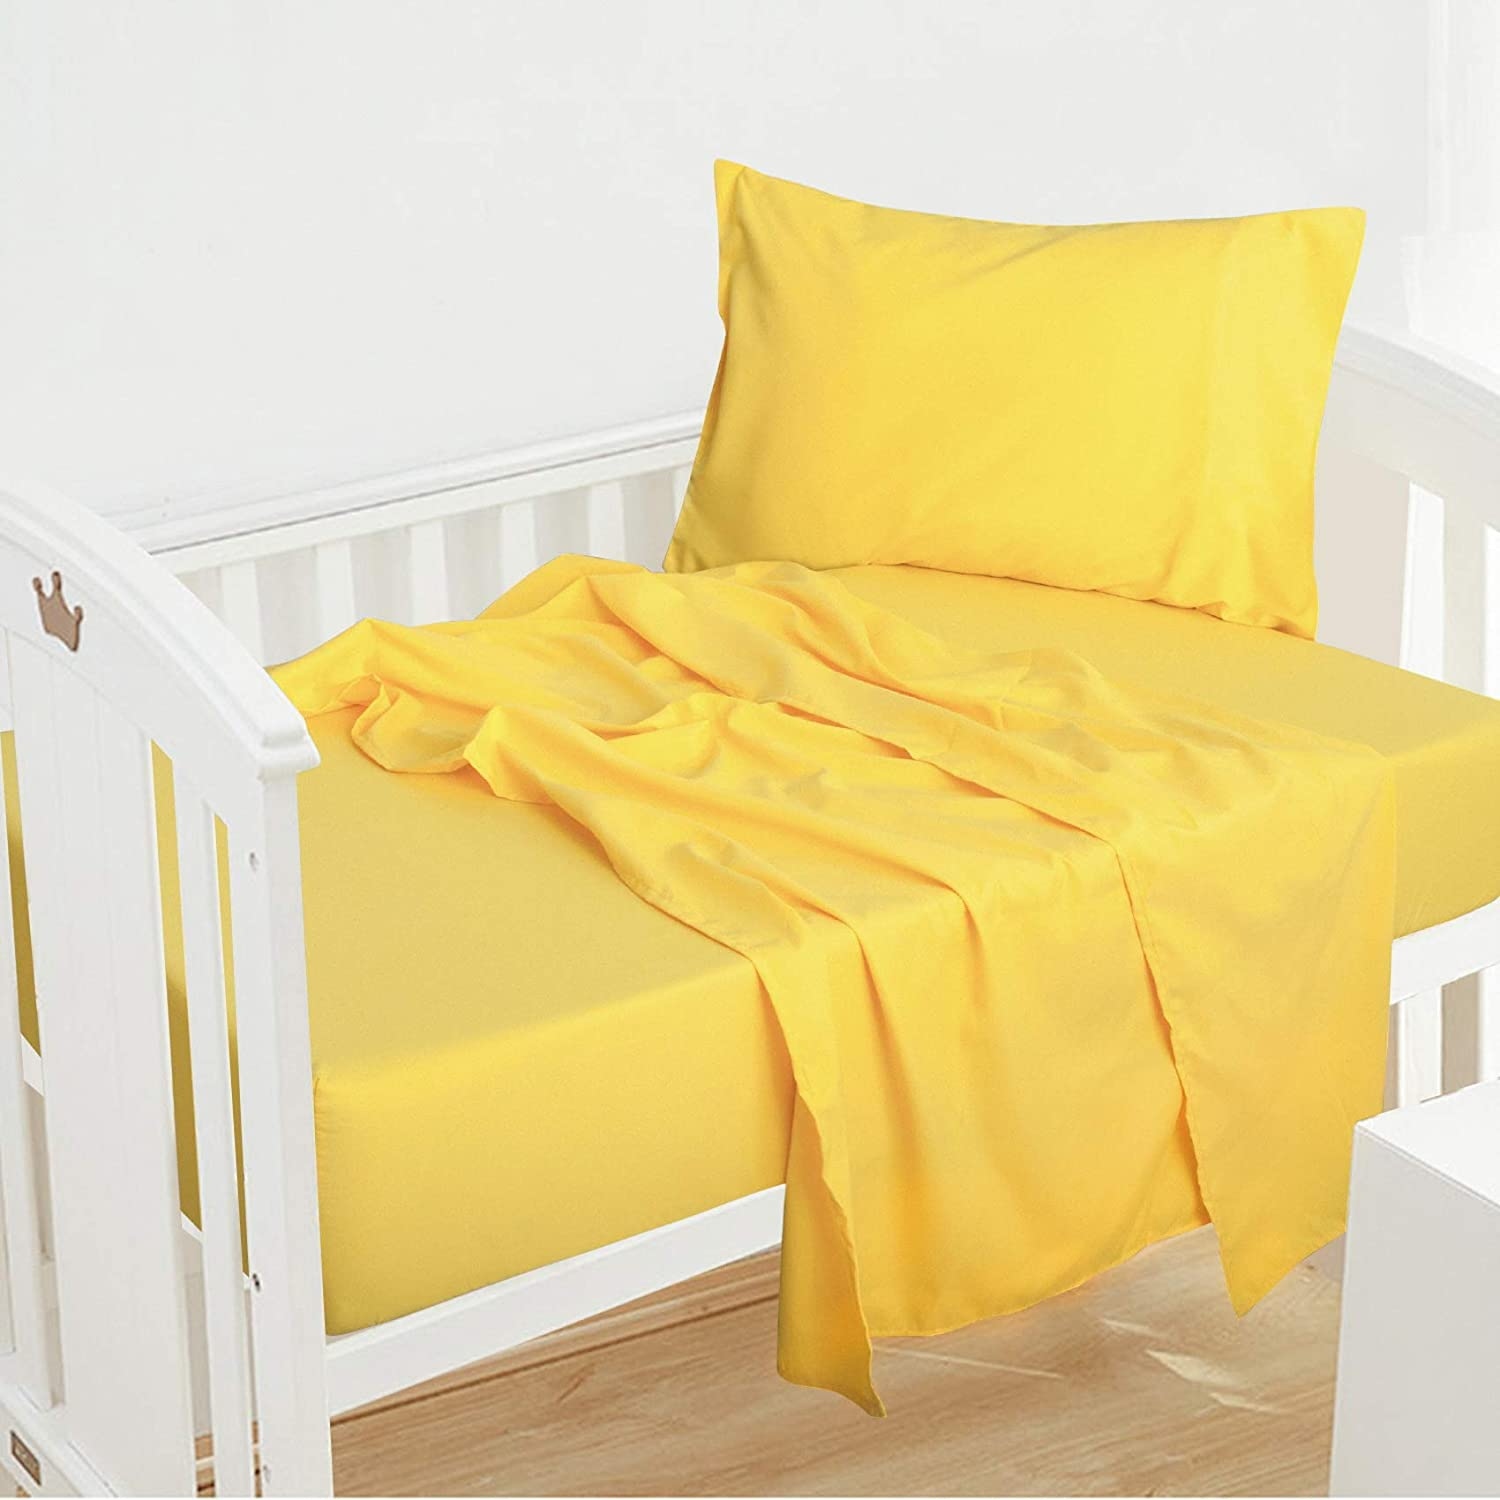 NTBAY 3 Piece Microfiber Yellow Bed Sheet